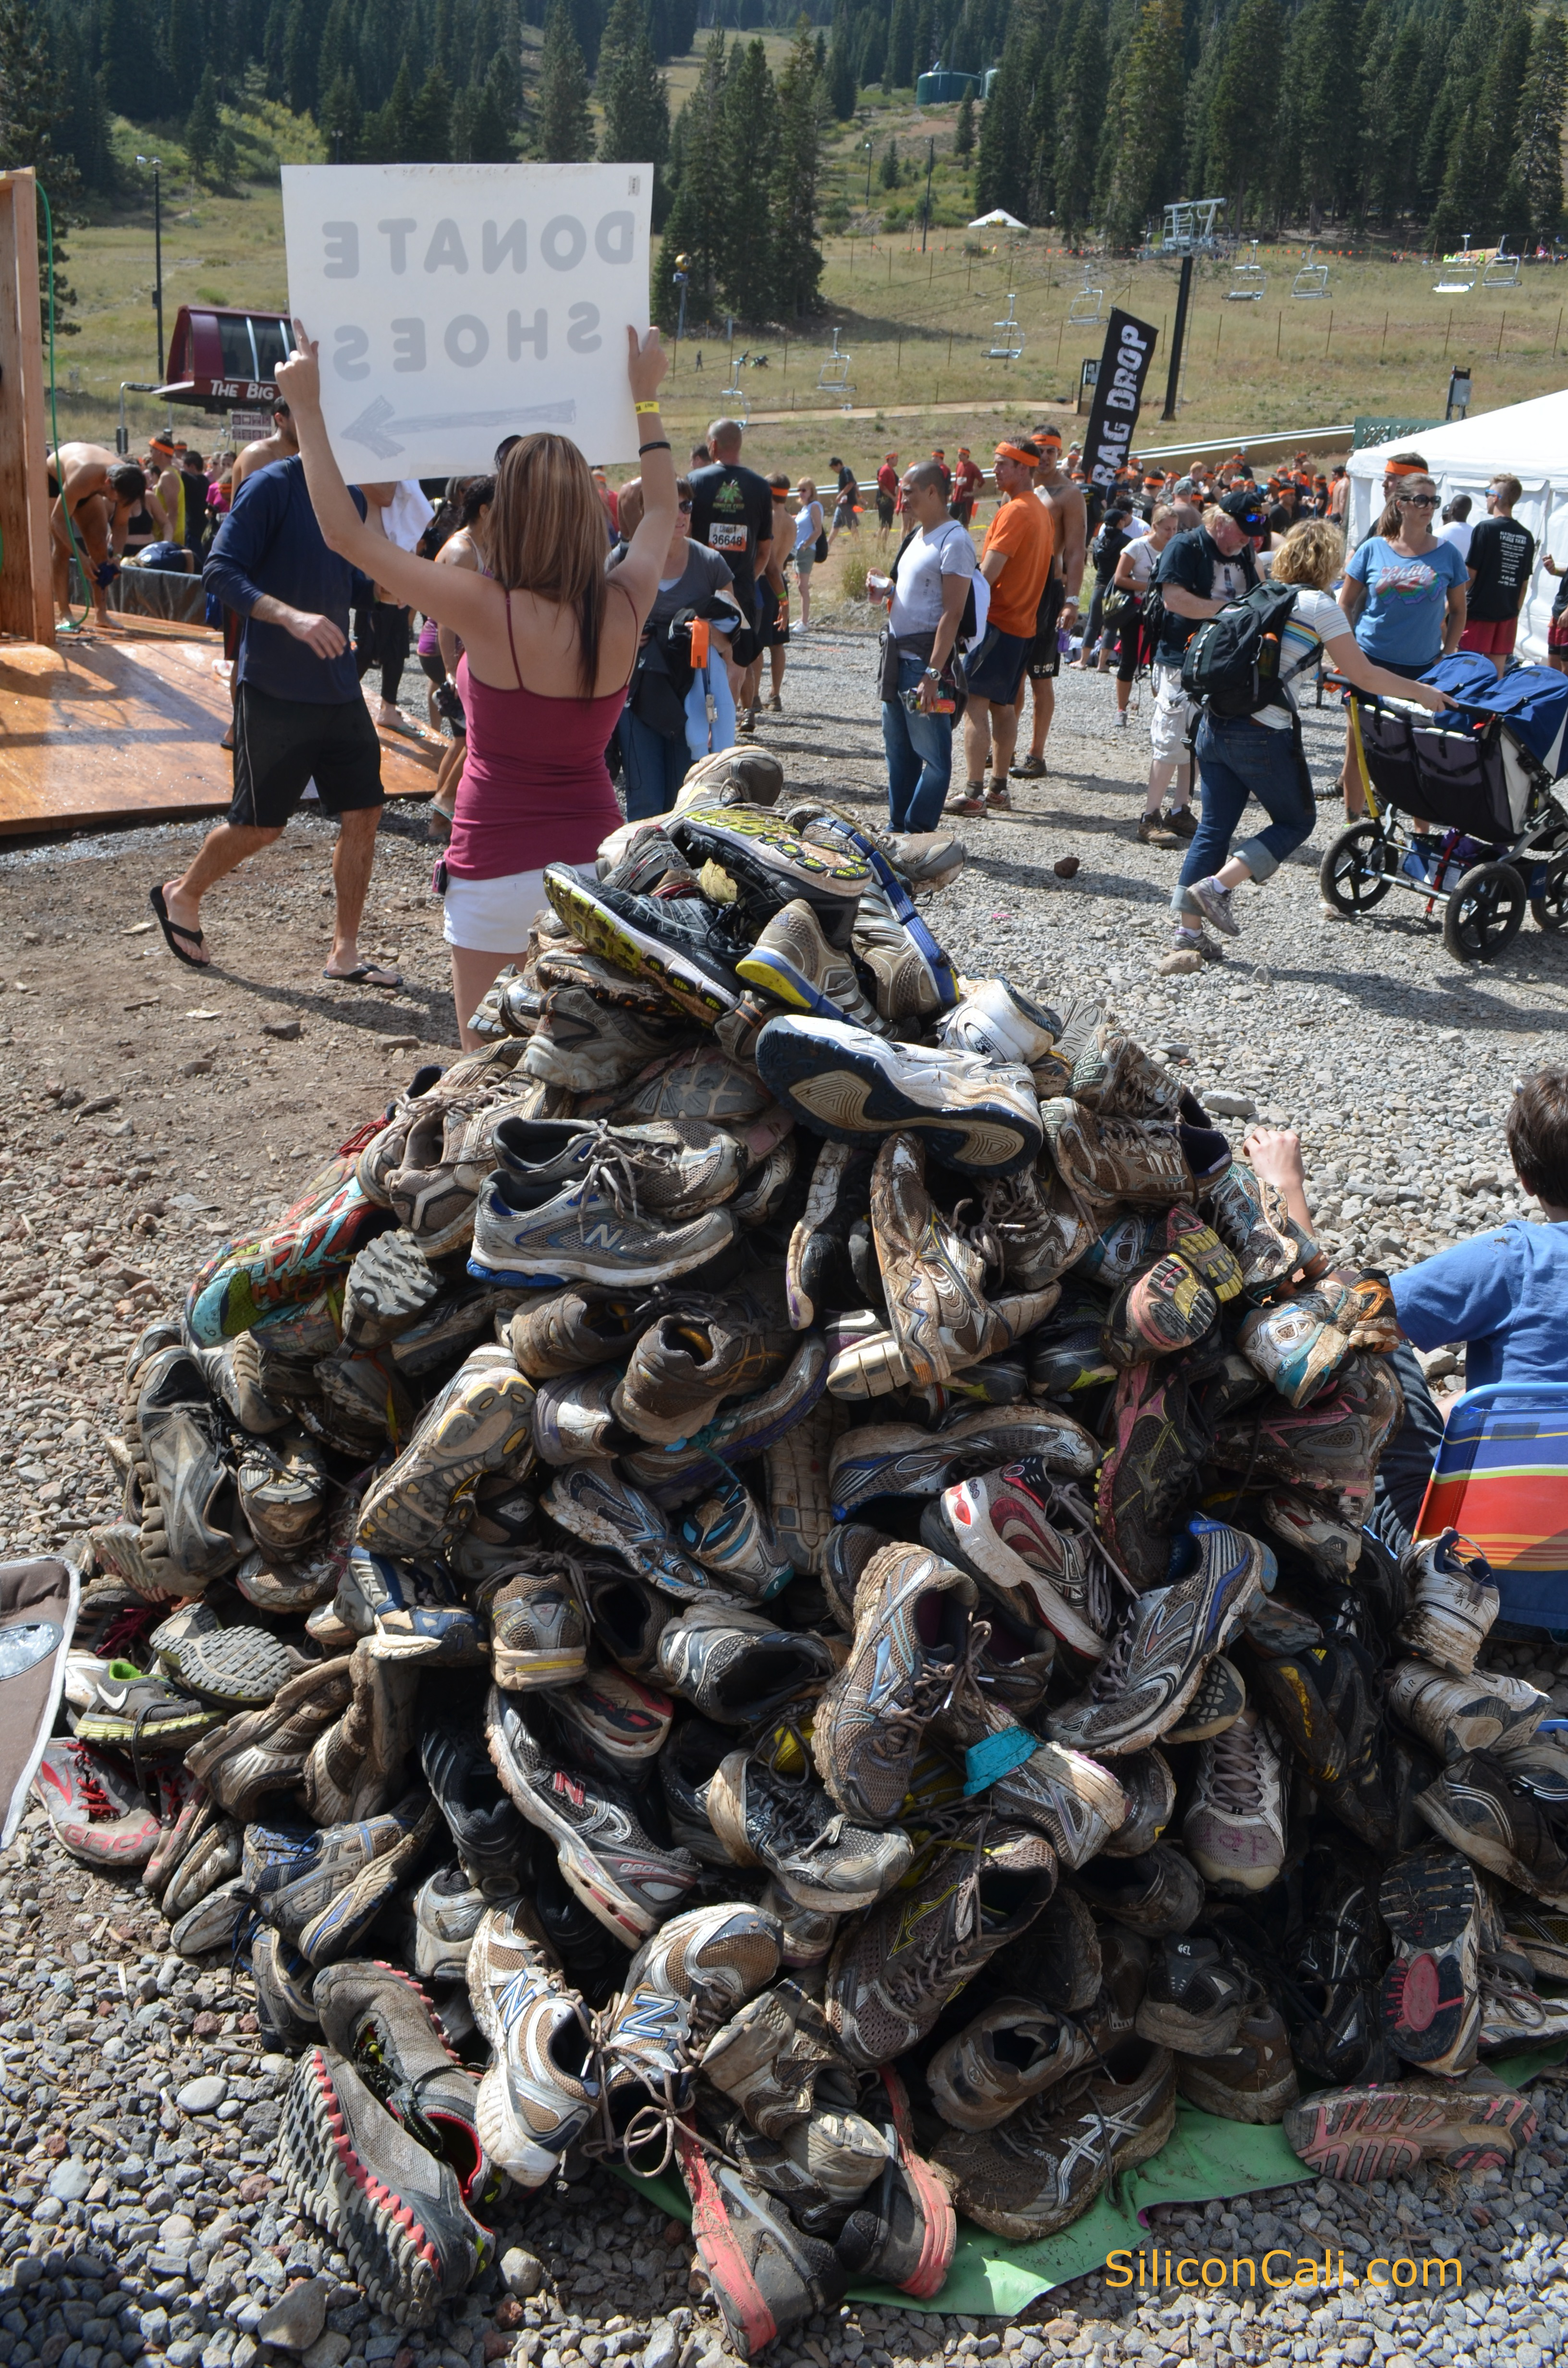 If you're buying a new pair of shoes for Tough Mudder, the best choice is a pair of trail running shoes. A word of caution: many styles of minimalist or